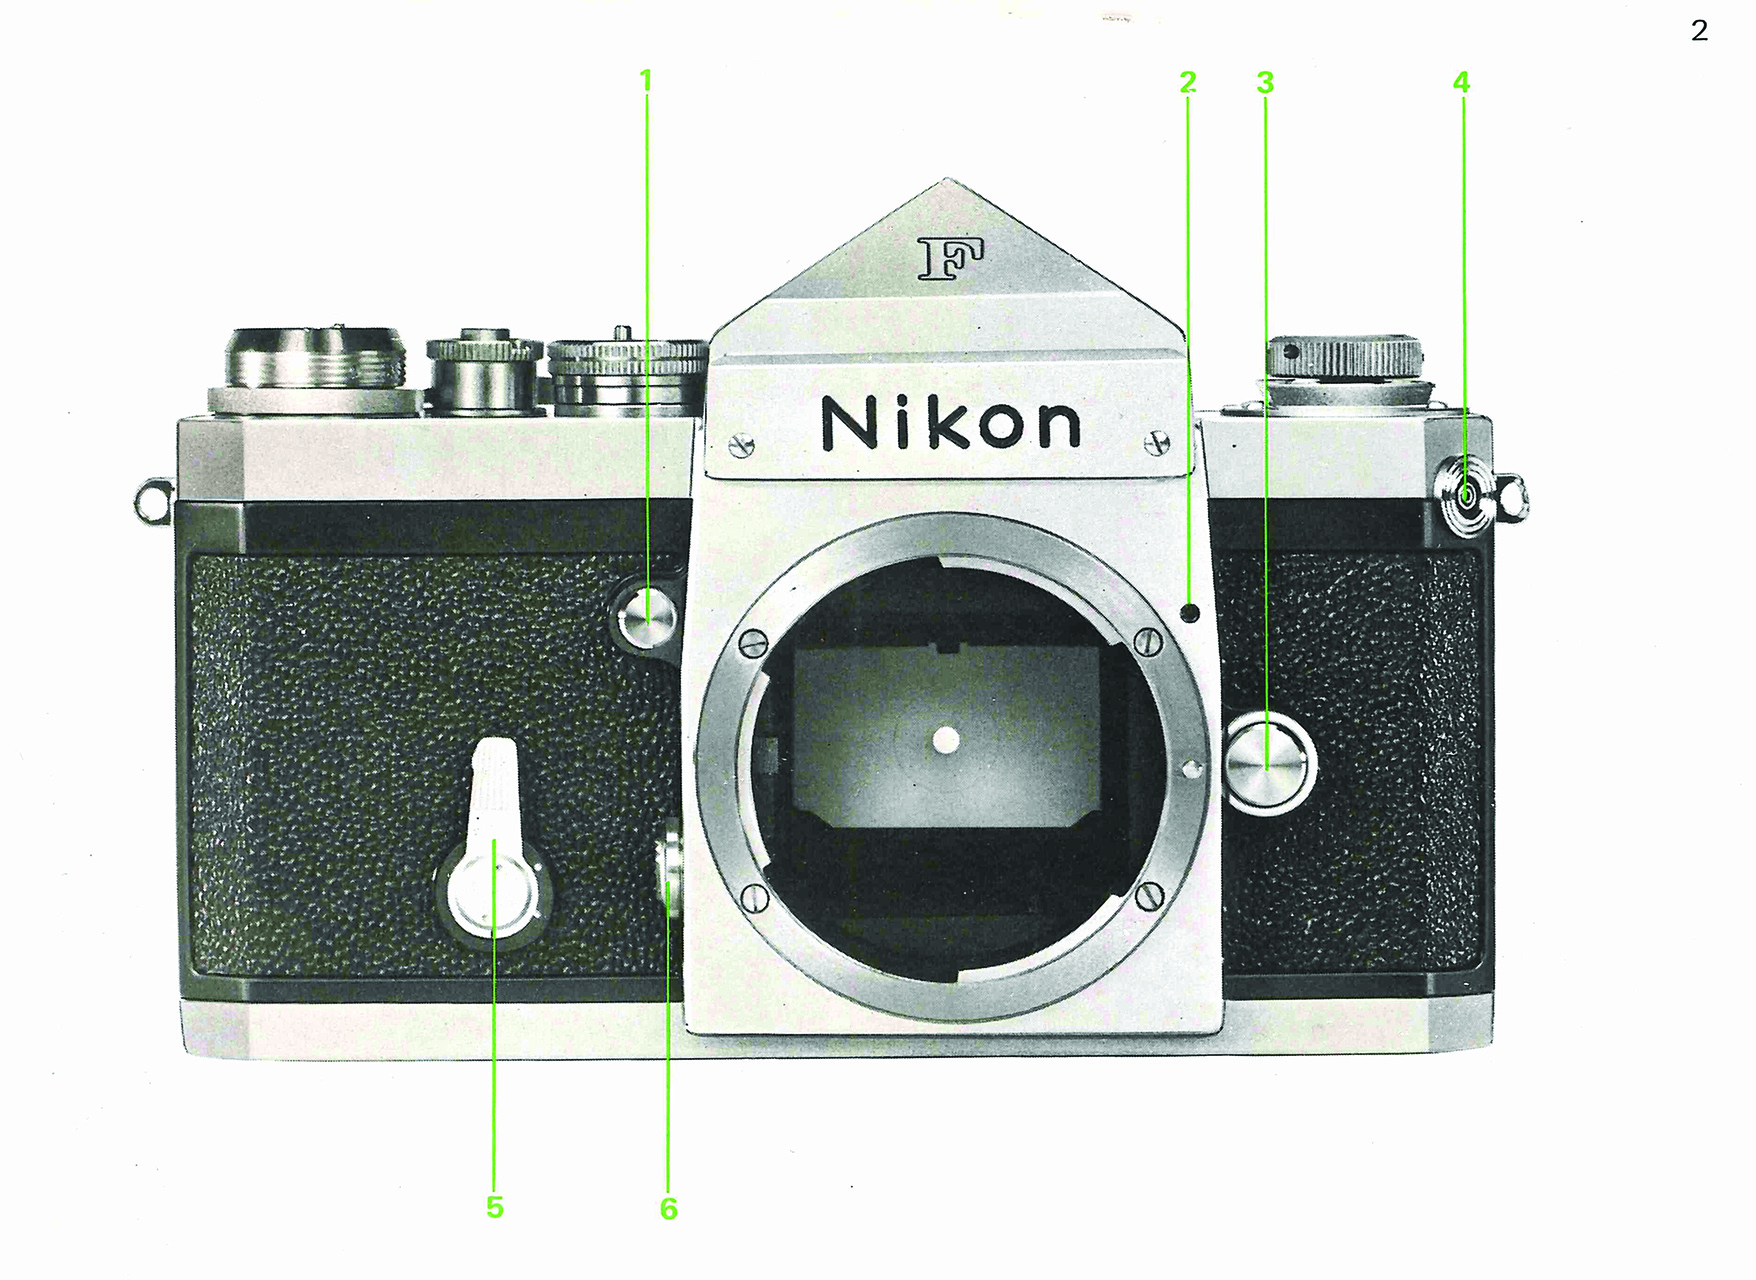 Photos courtesy of the Nikon F instruction manual.